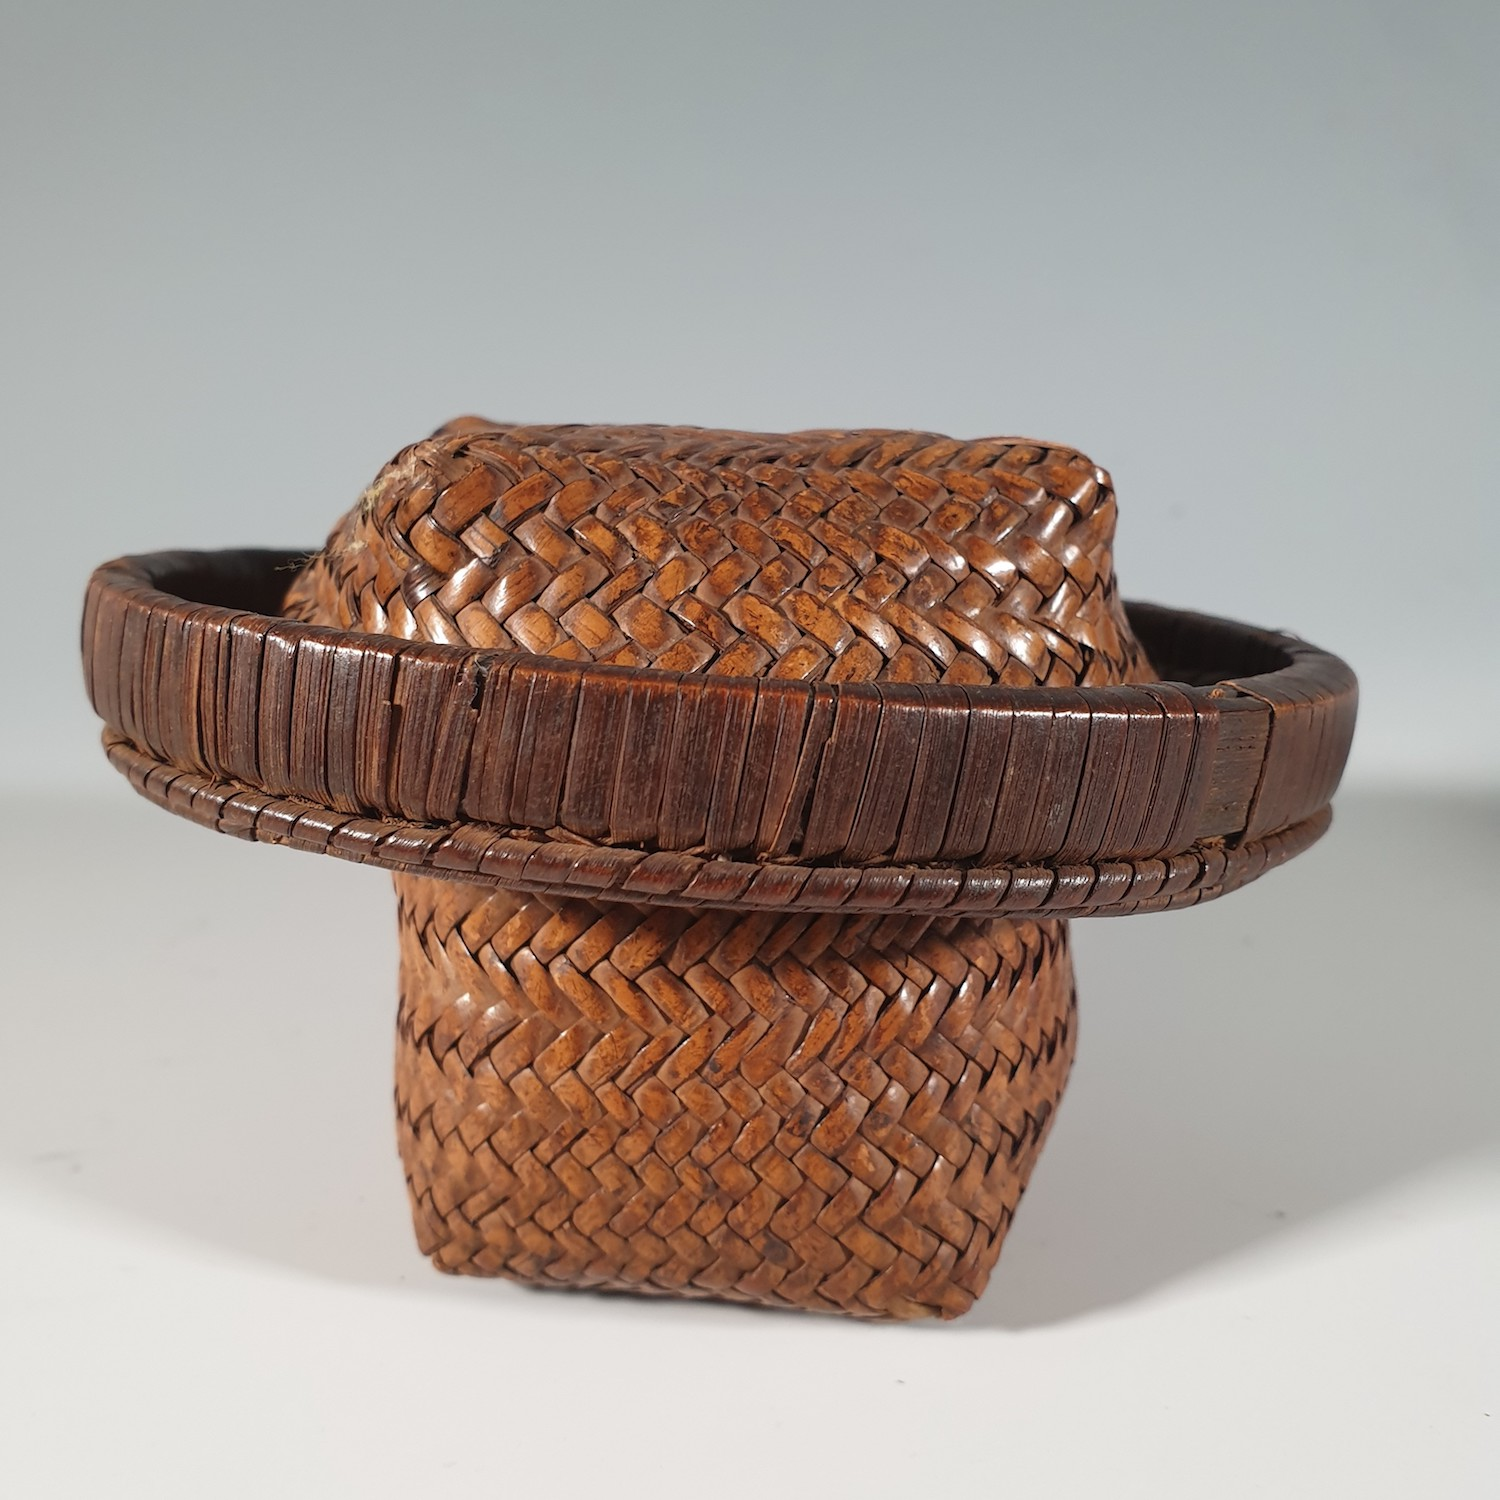 A very rare miniature Kuba Basket